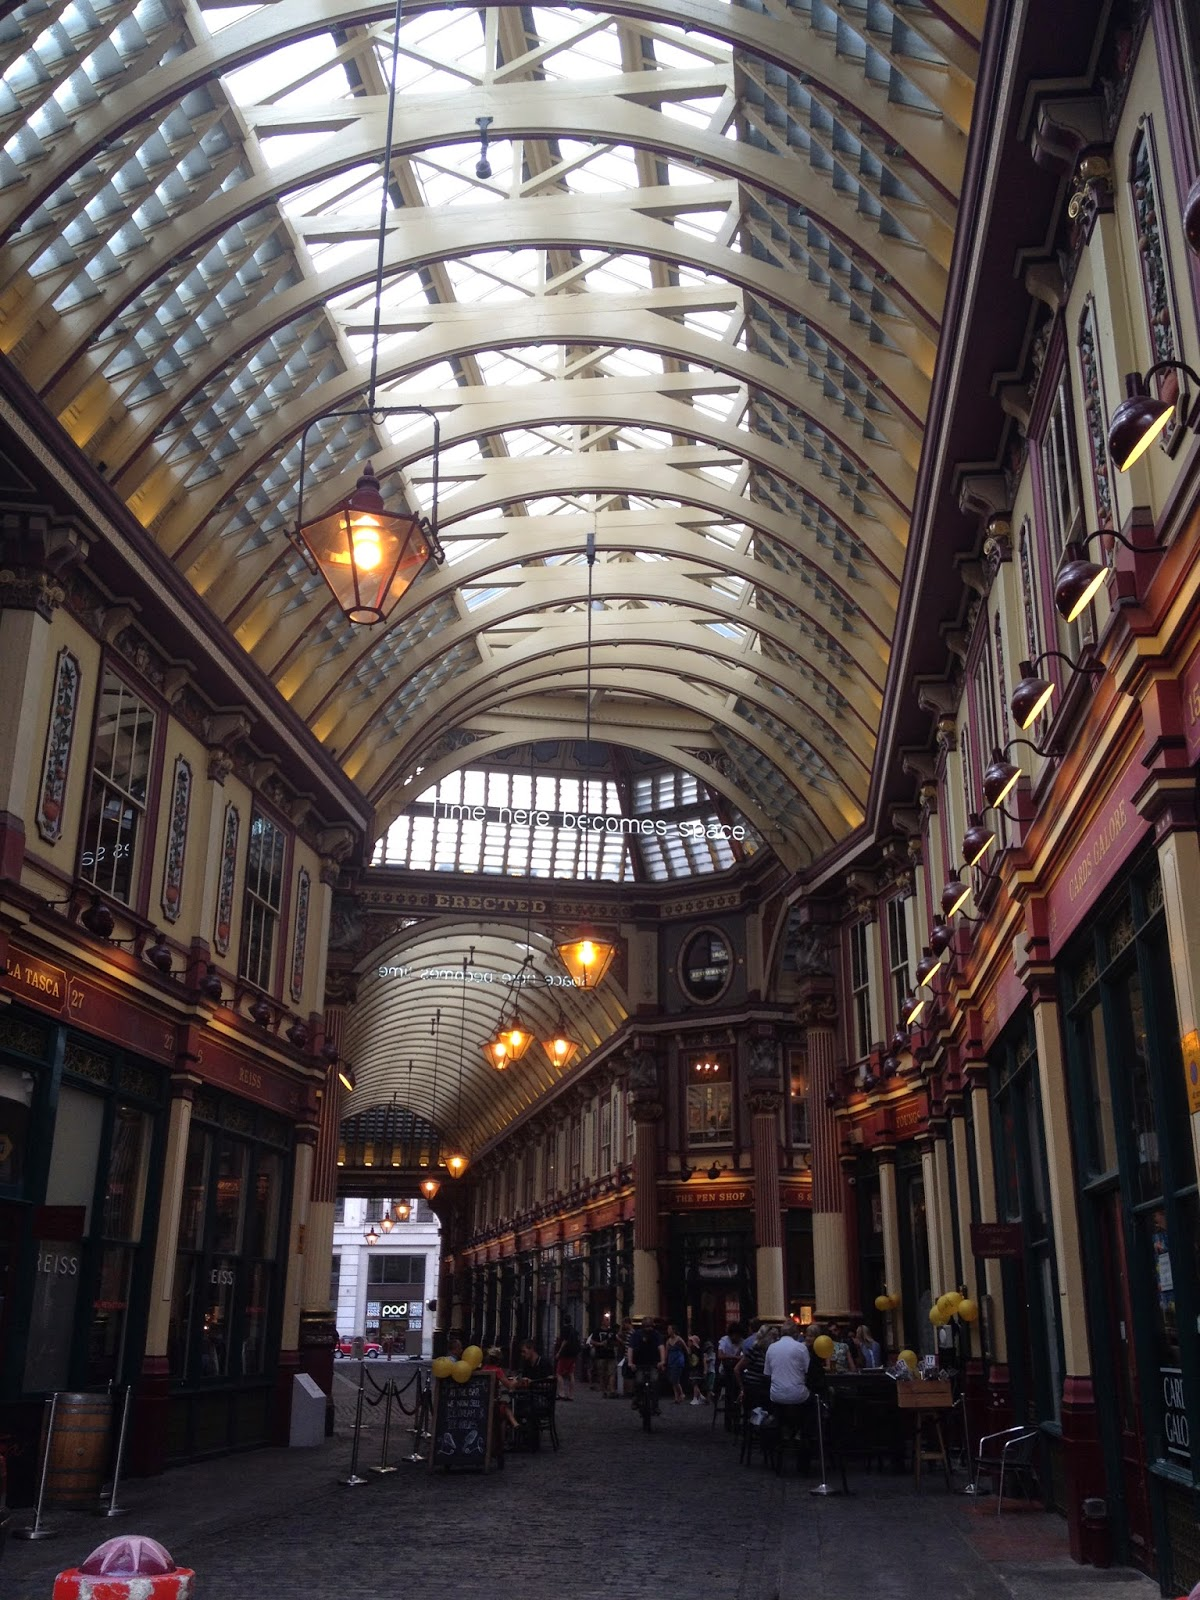 Leadenhall Market London (photo credit: http://researchandramblings.blogspot.com/)